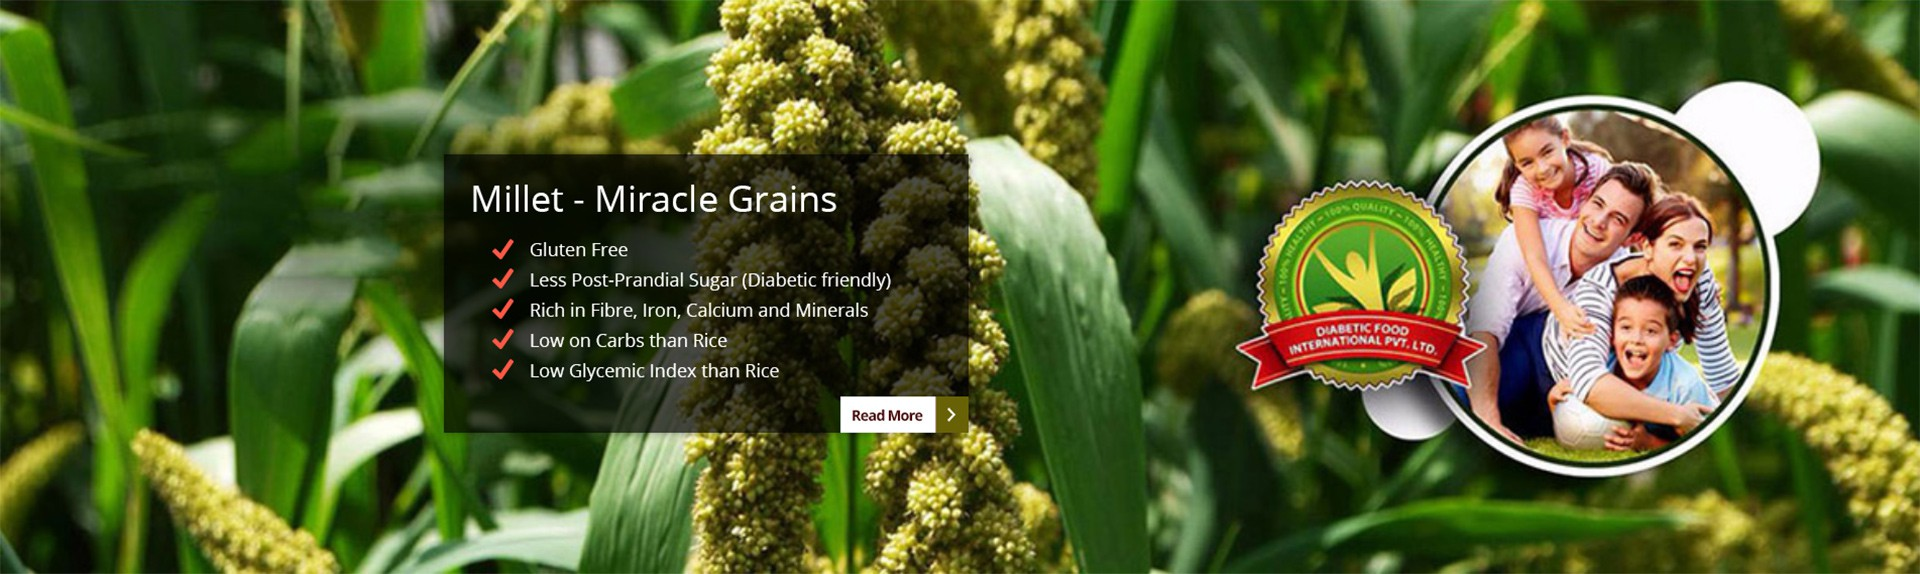 Millet - Miracle Grains